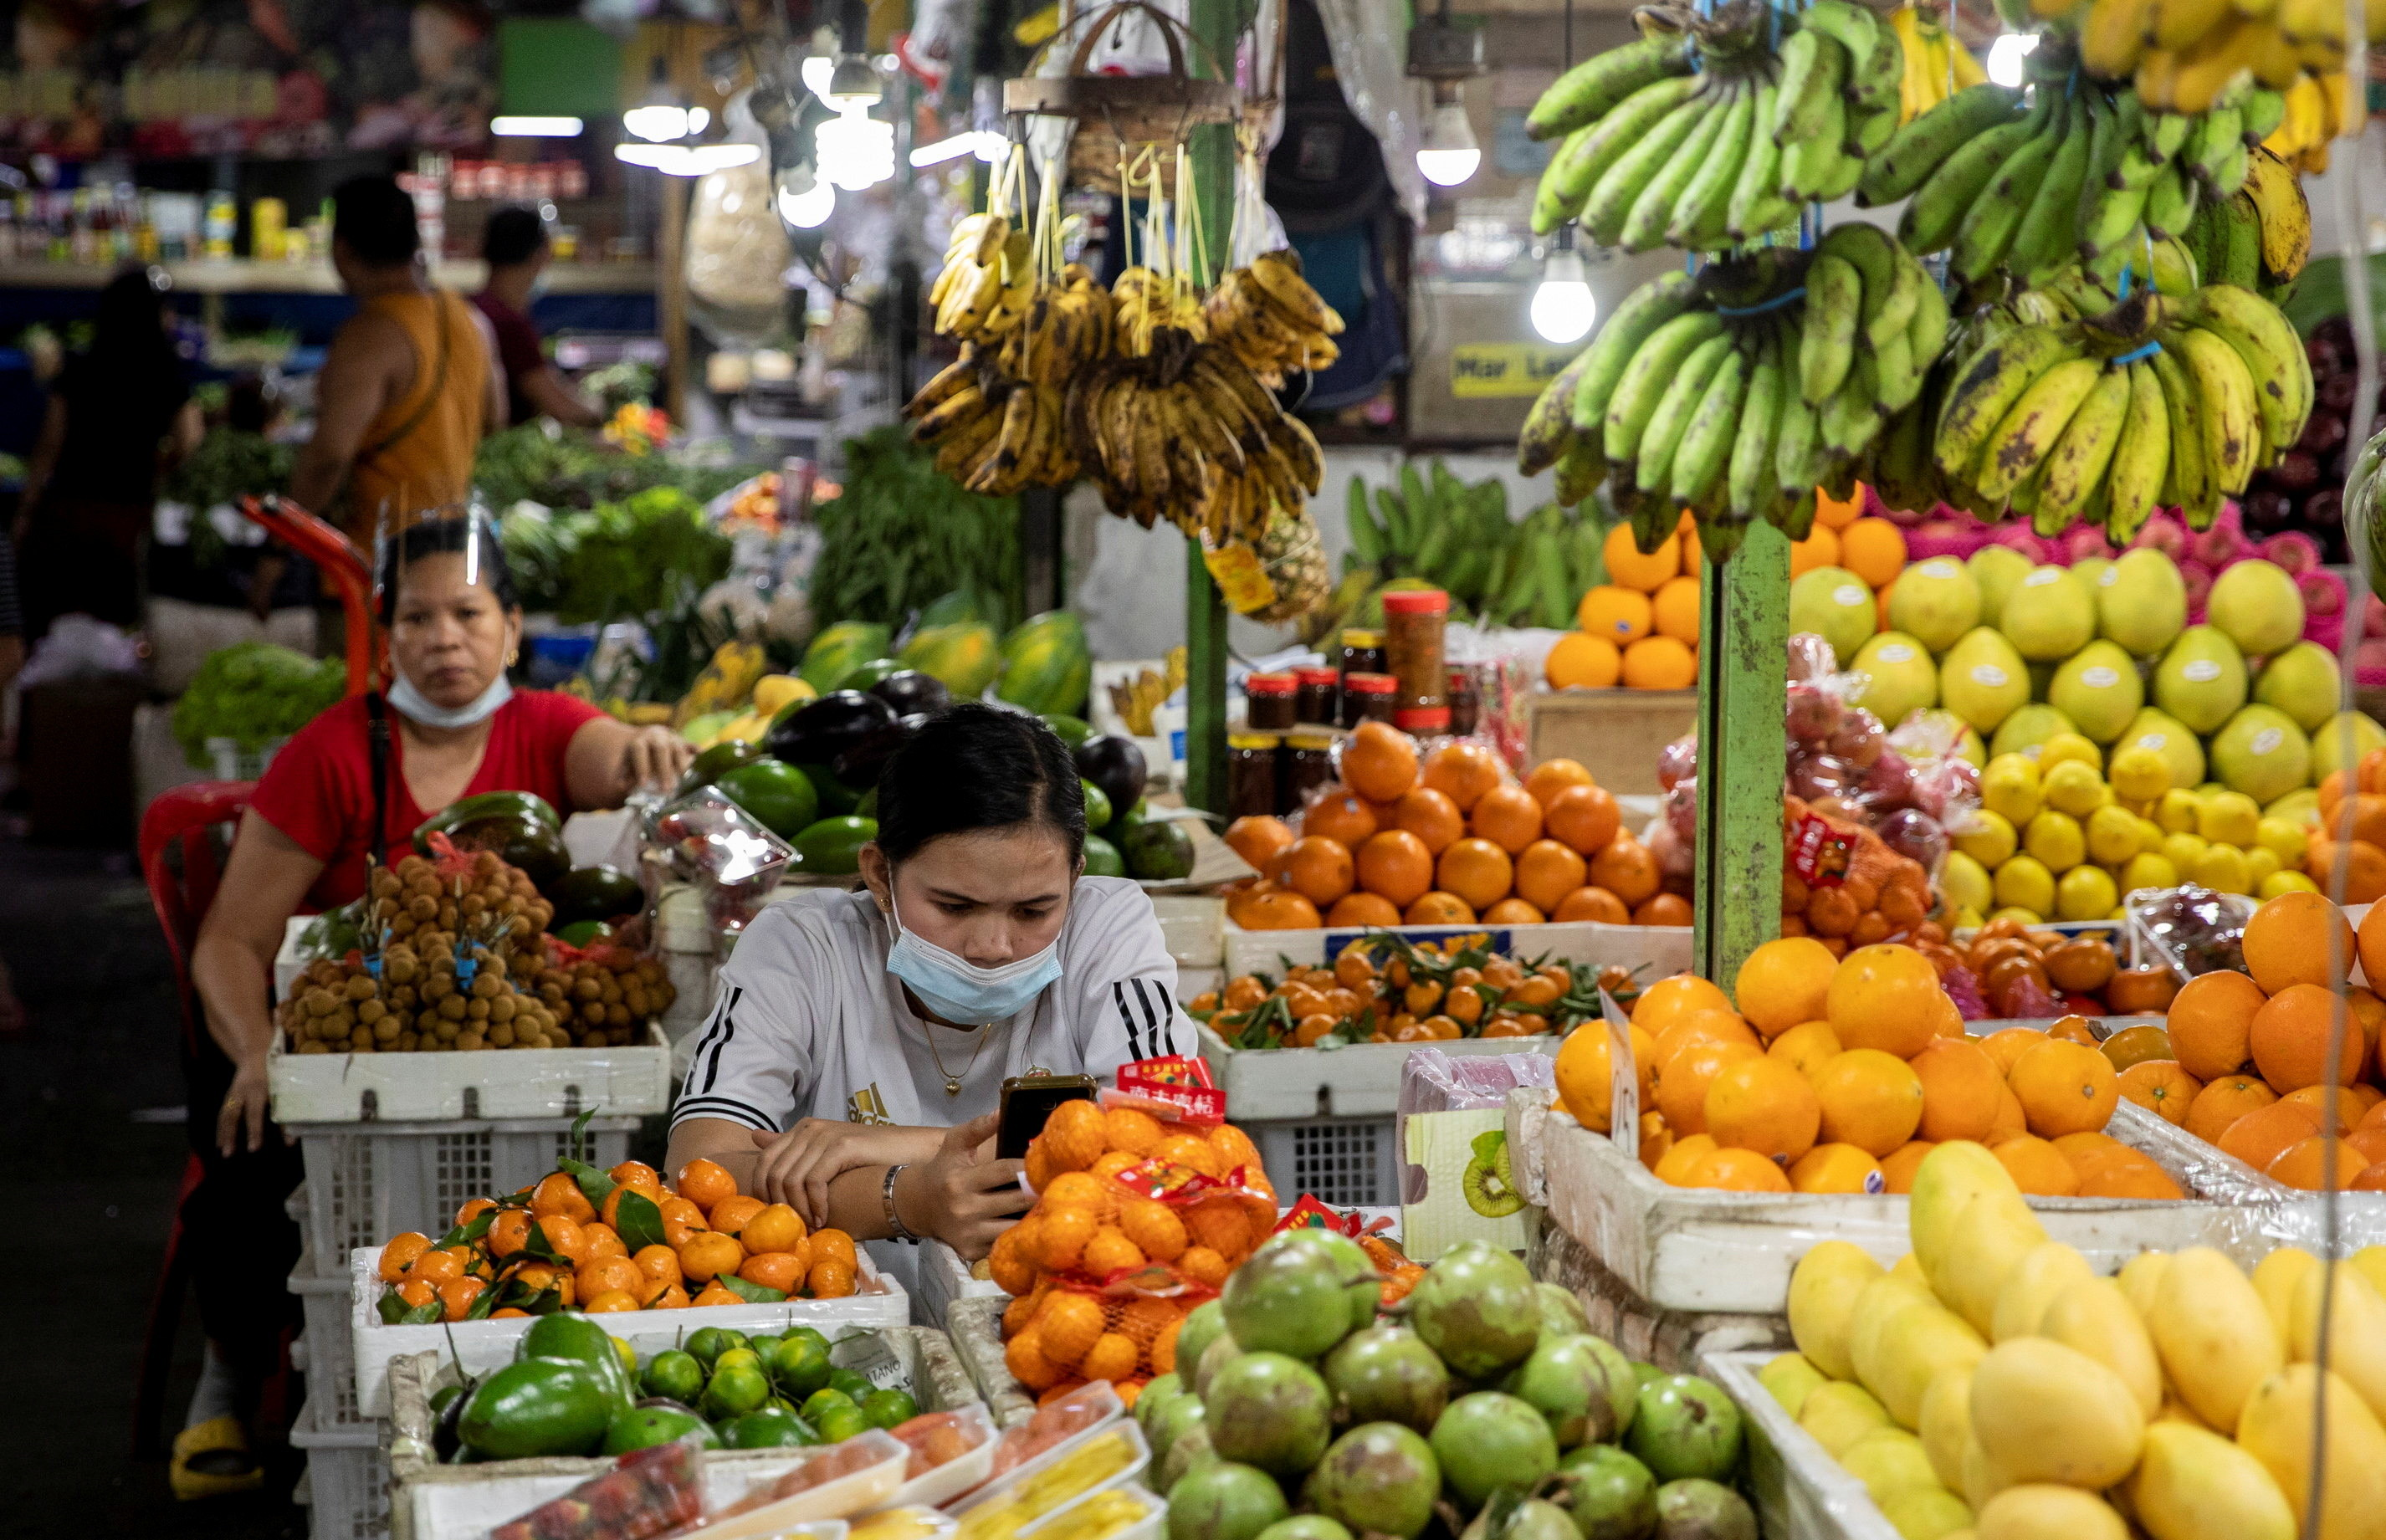 a picture of fruit sellers surrounded by different coloured fruits